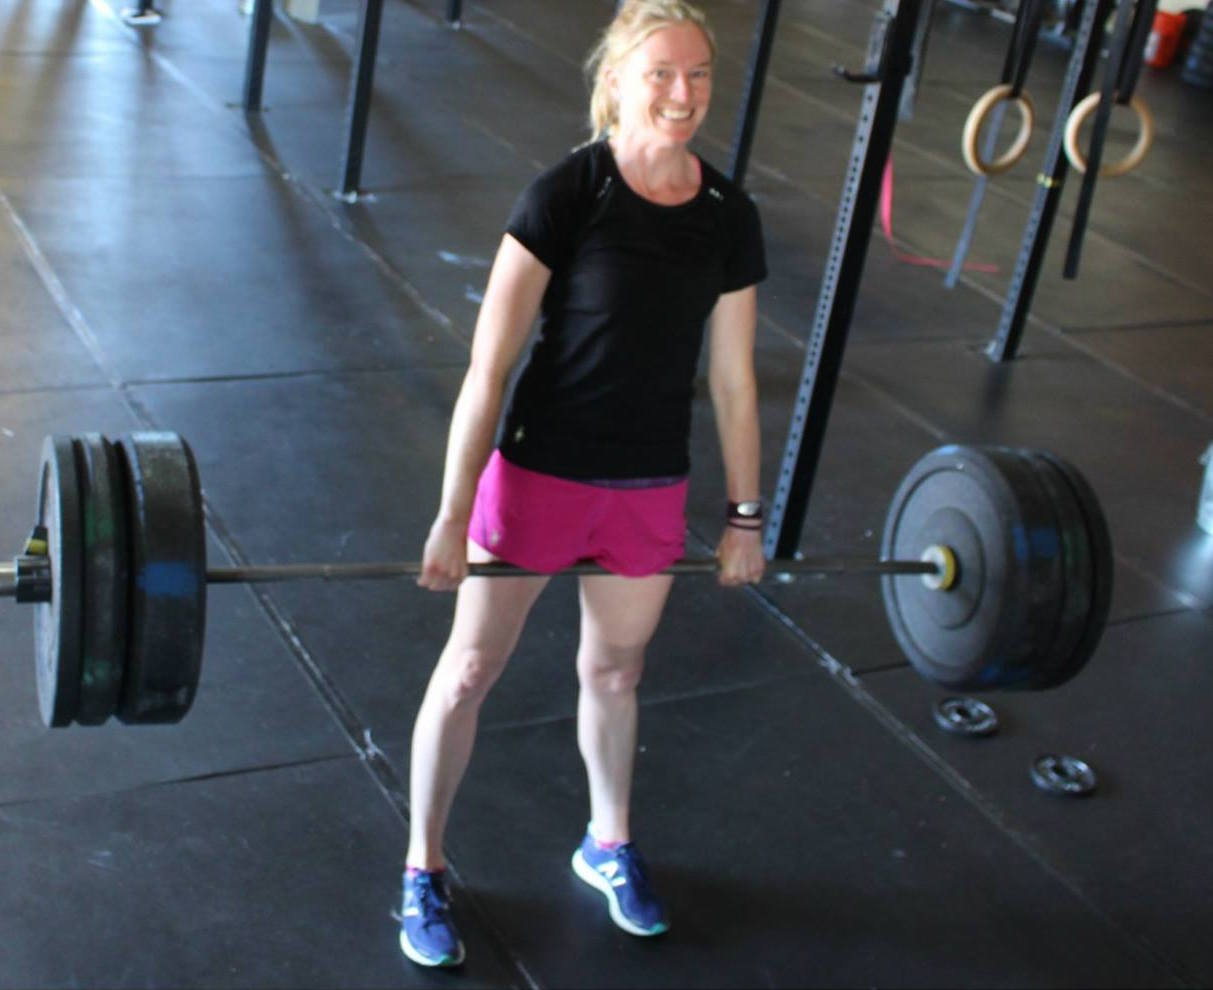 Lifting-deadlift